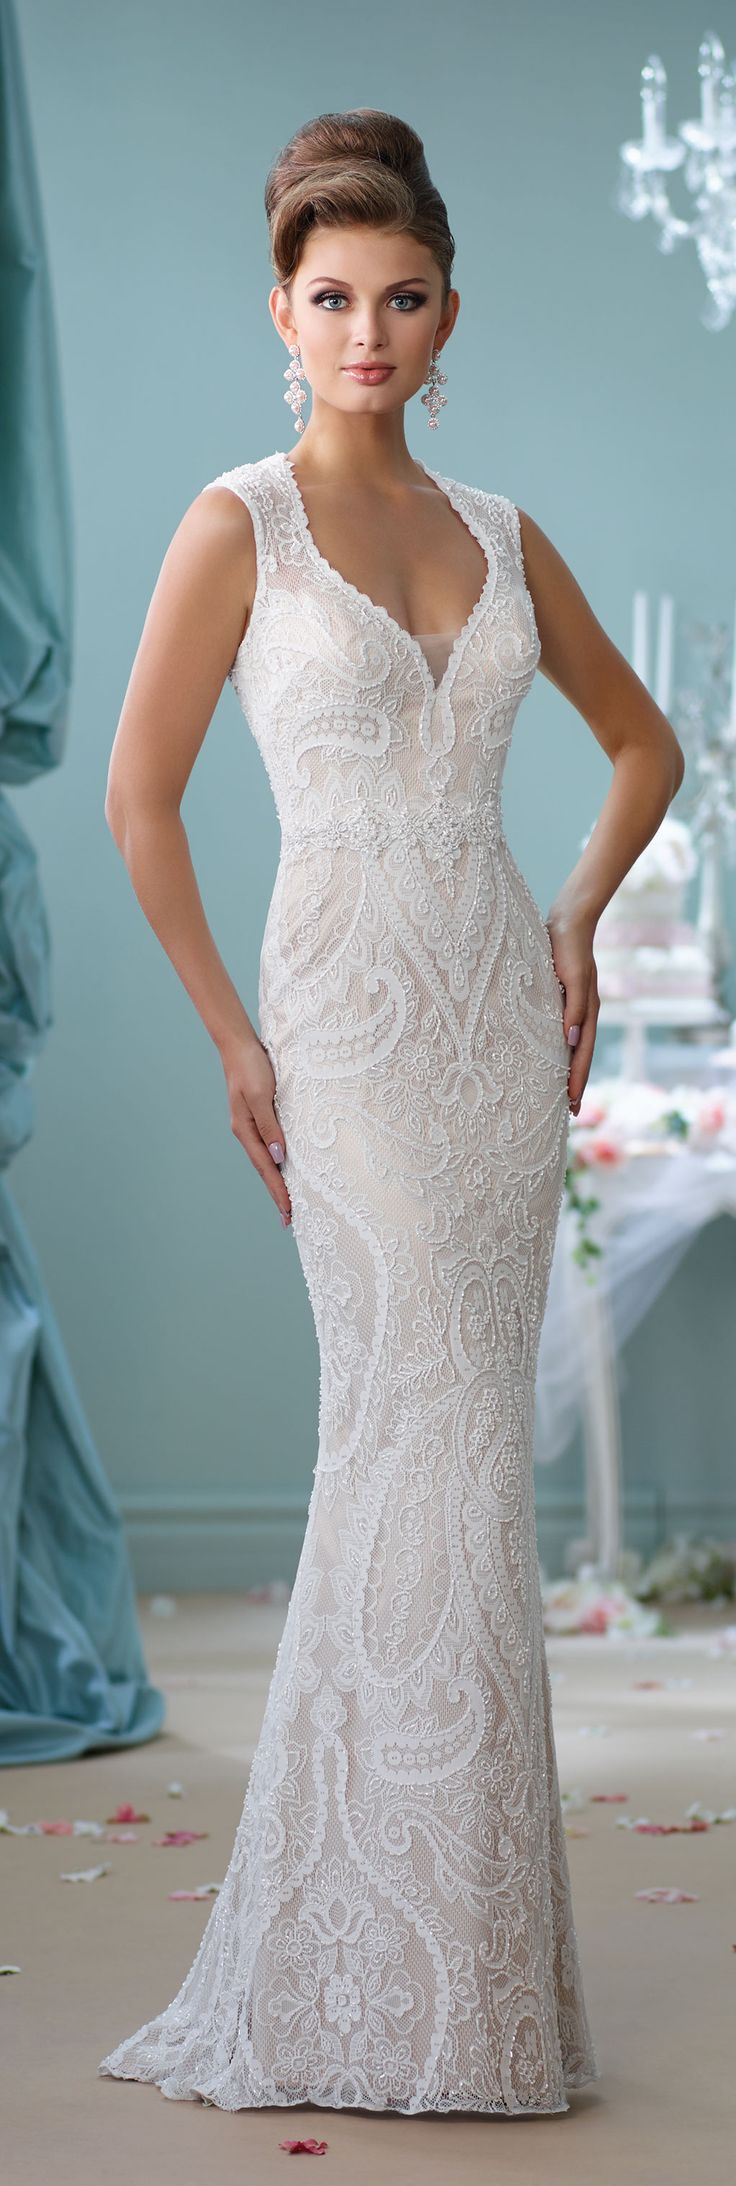 165 best Wedding dresses images on Pinterest | Gown wedding, Wedding ...